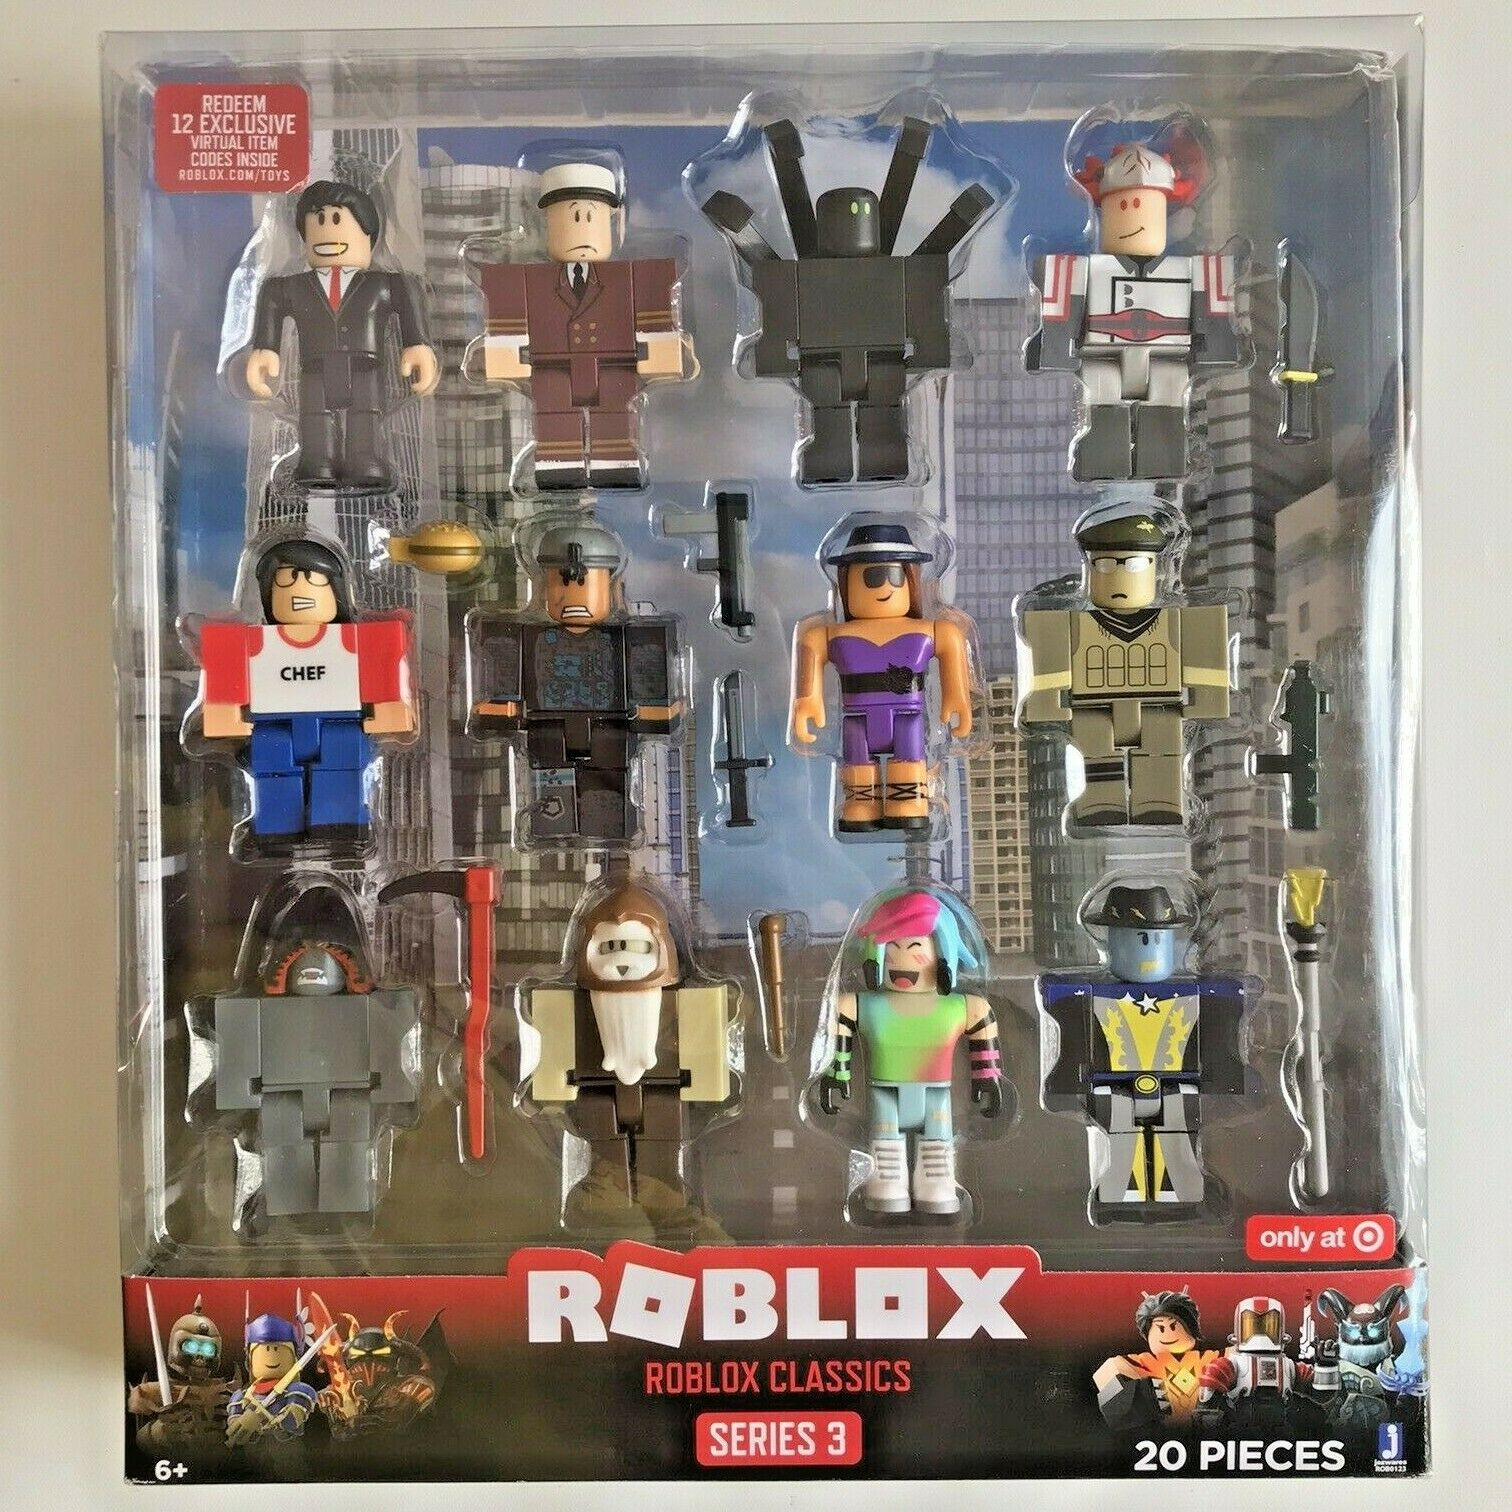 Roblox Game Cards Target Roblox Classics Series 3 New Sealed 20 Pieces With Codes Target Exclusive For Sale Online